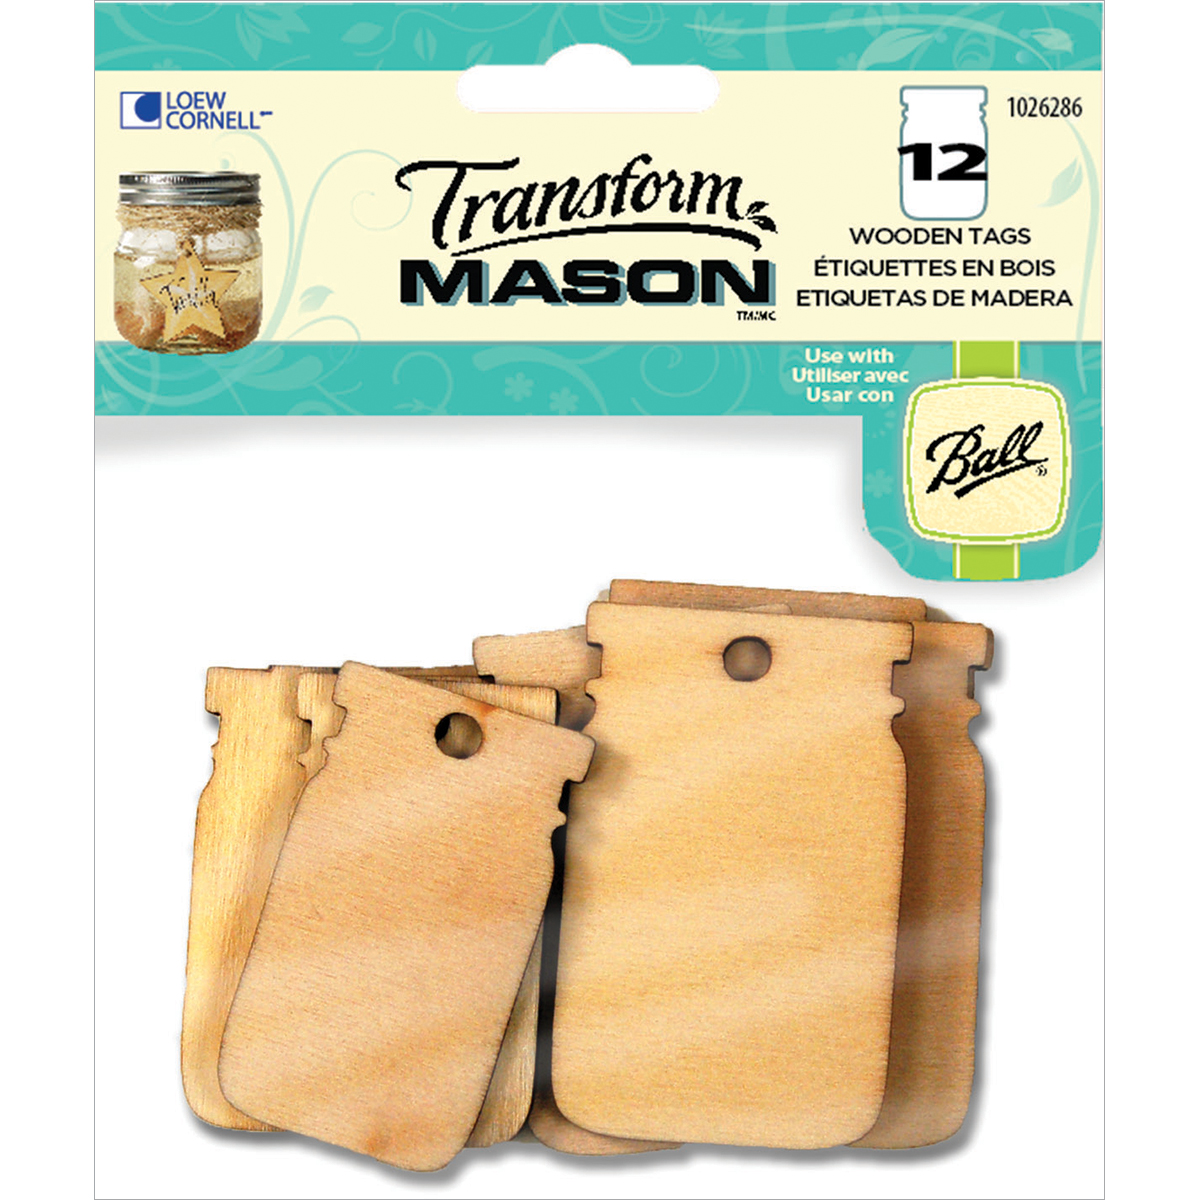 Transform Mason Wooden Tags, 12ct